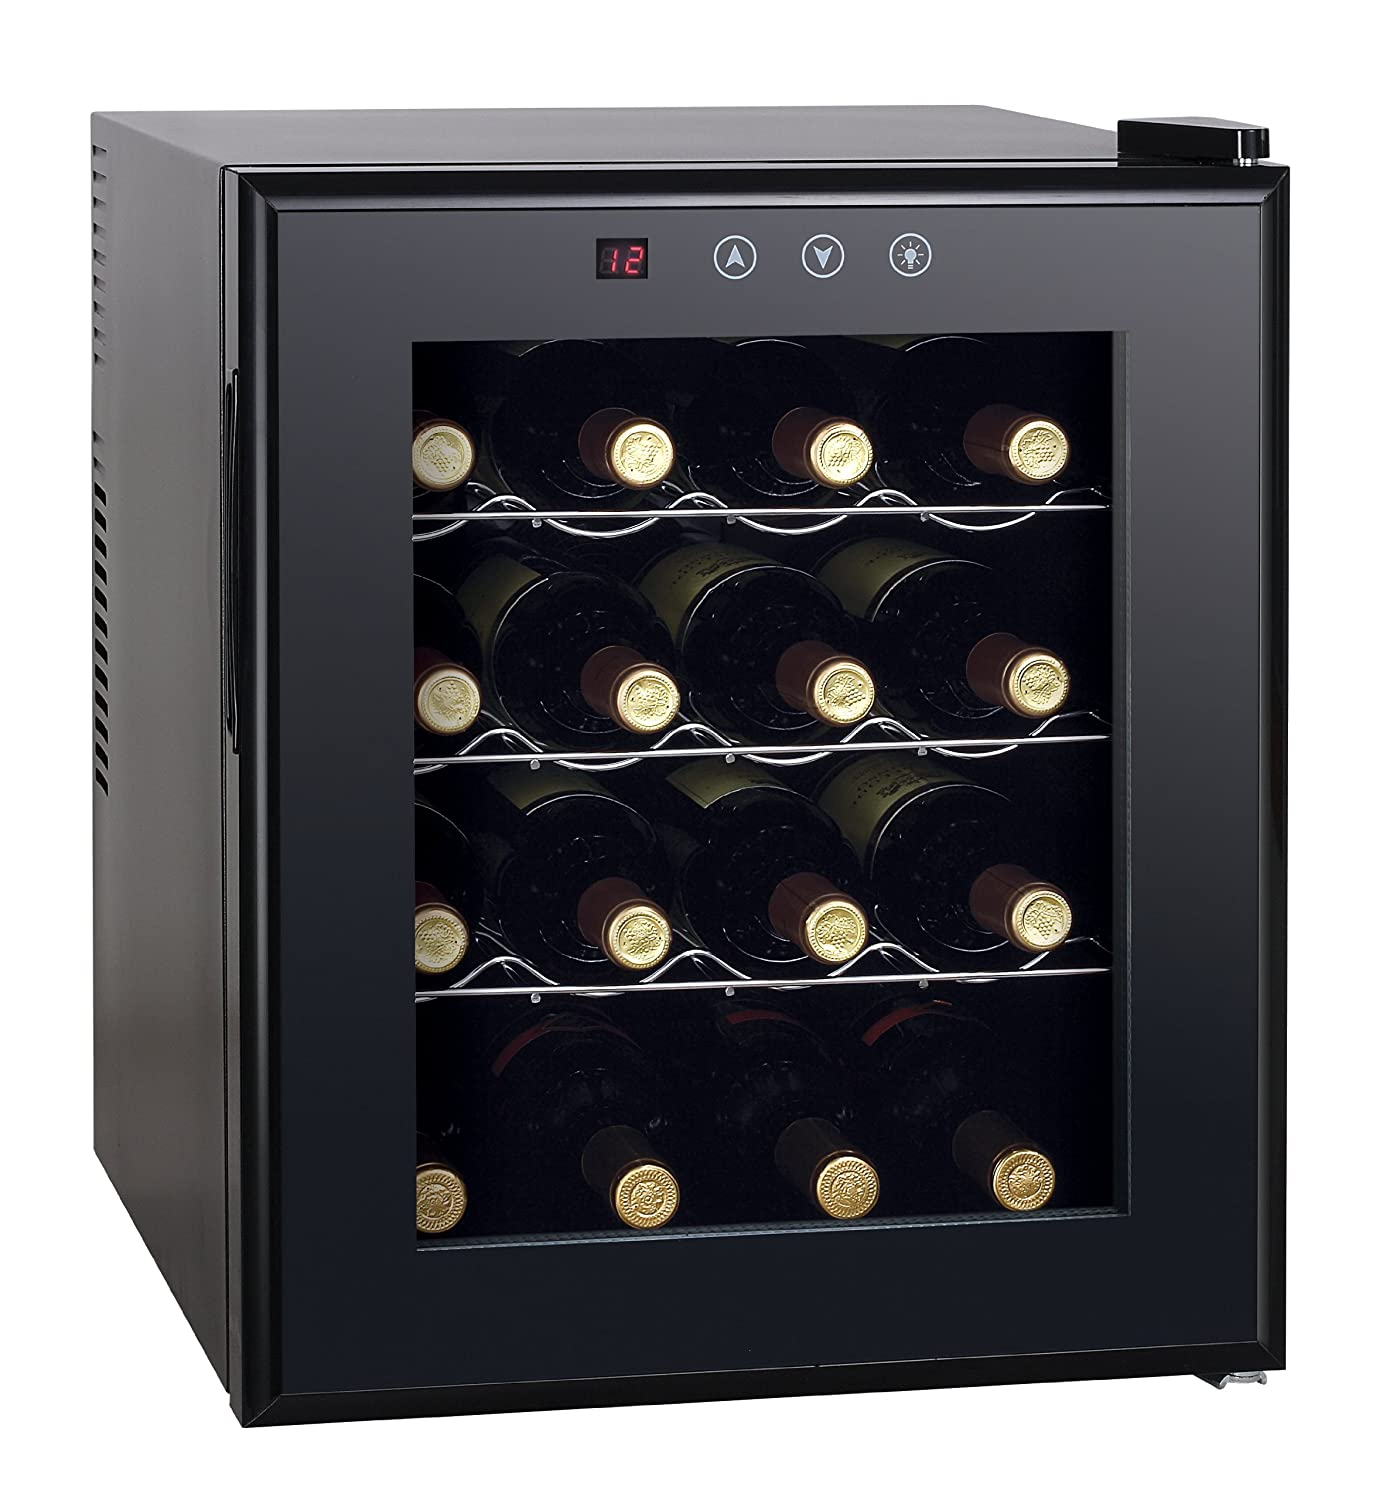 Spt Thermo-Electric Wine Cooler with Heating, 16-Bottles SPT Appliance WC-1685H